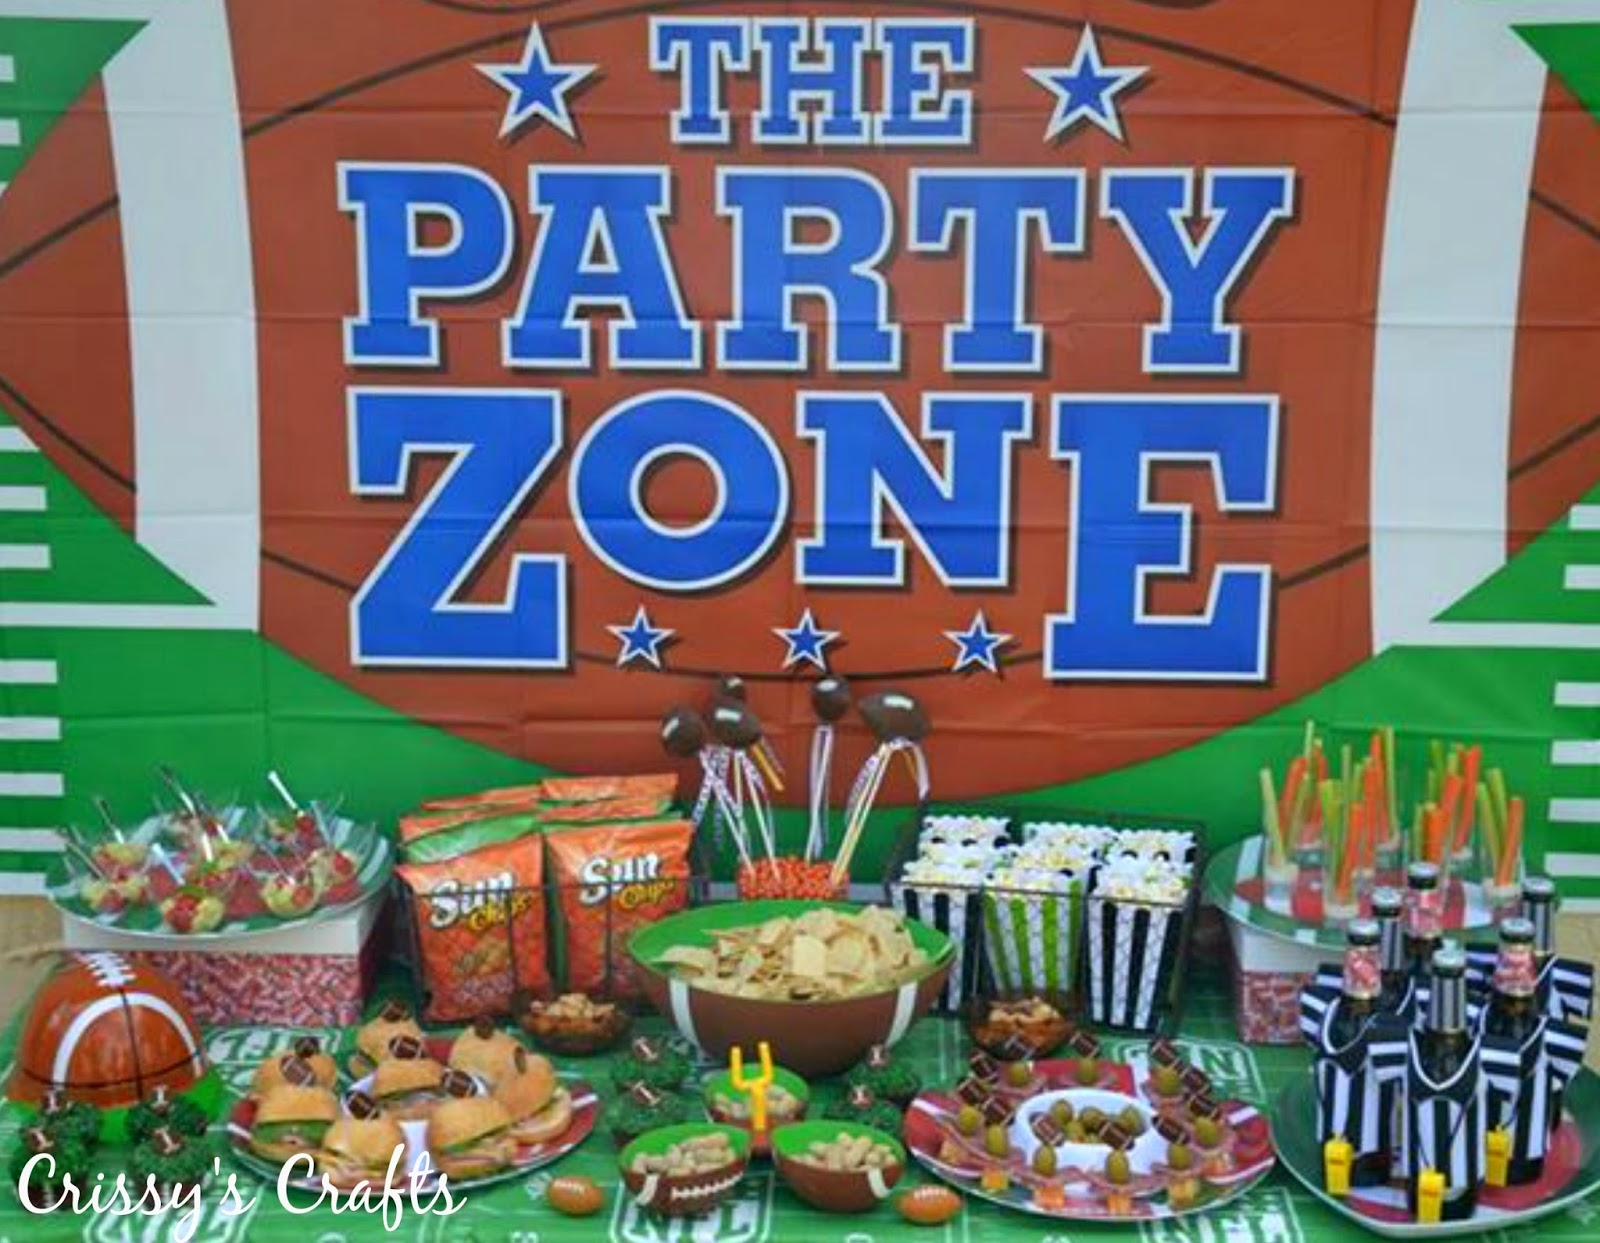 Crissy 39 s crafts superbowl party ideas for Super bowl party items